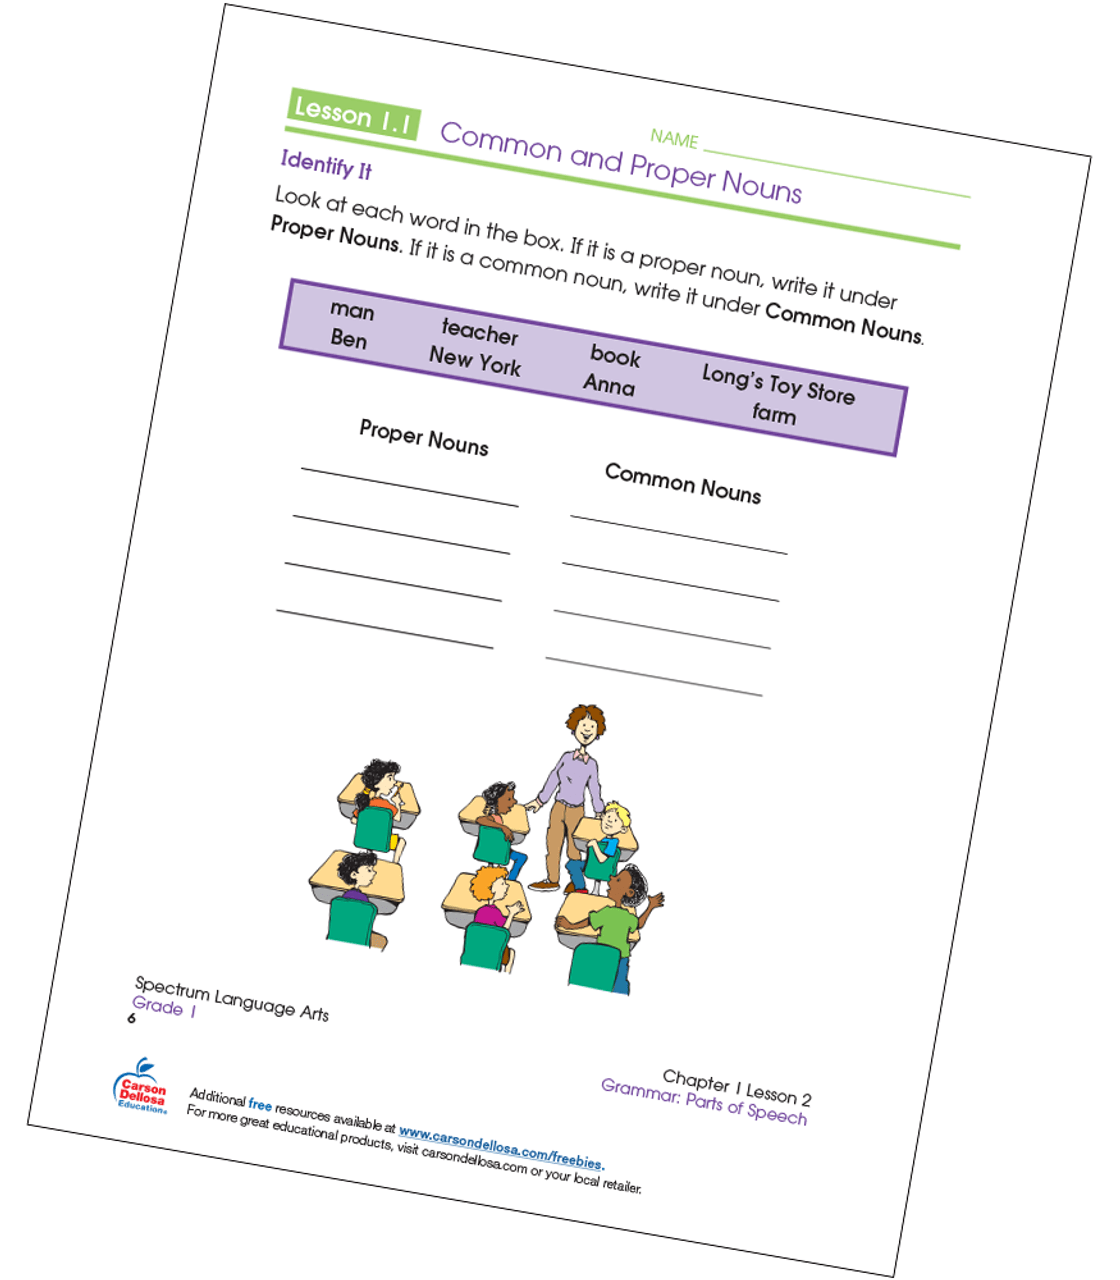 medium resolution of Identifying Common and Proper Nouns Grade 1 Free Printable   Carson Dellosa